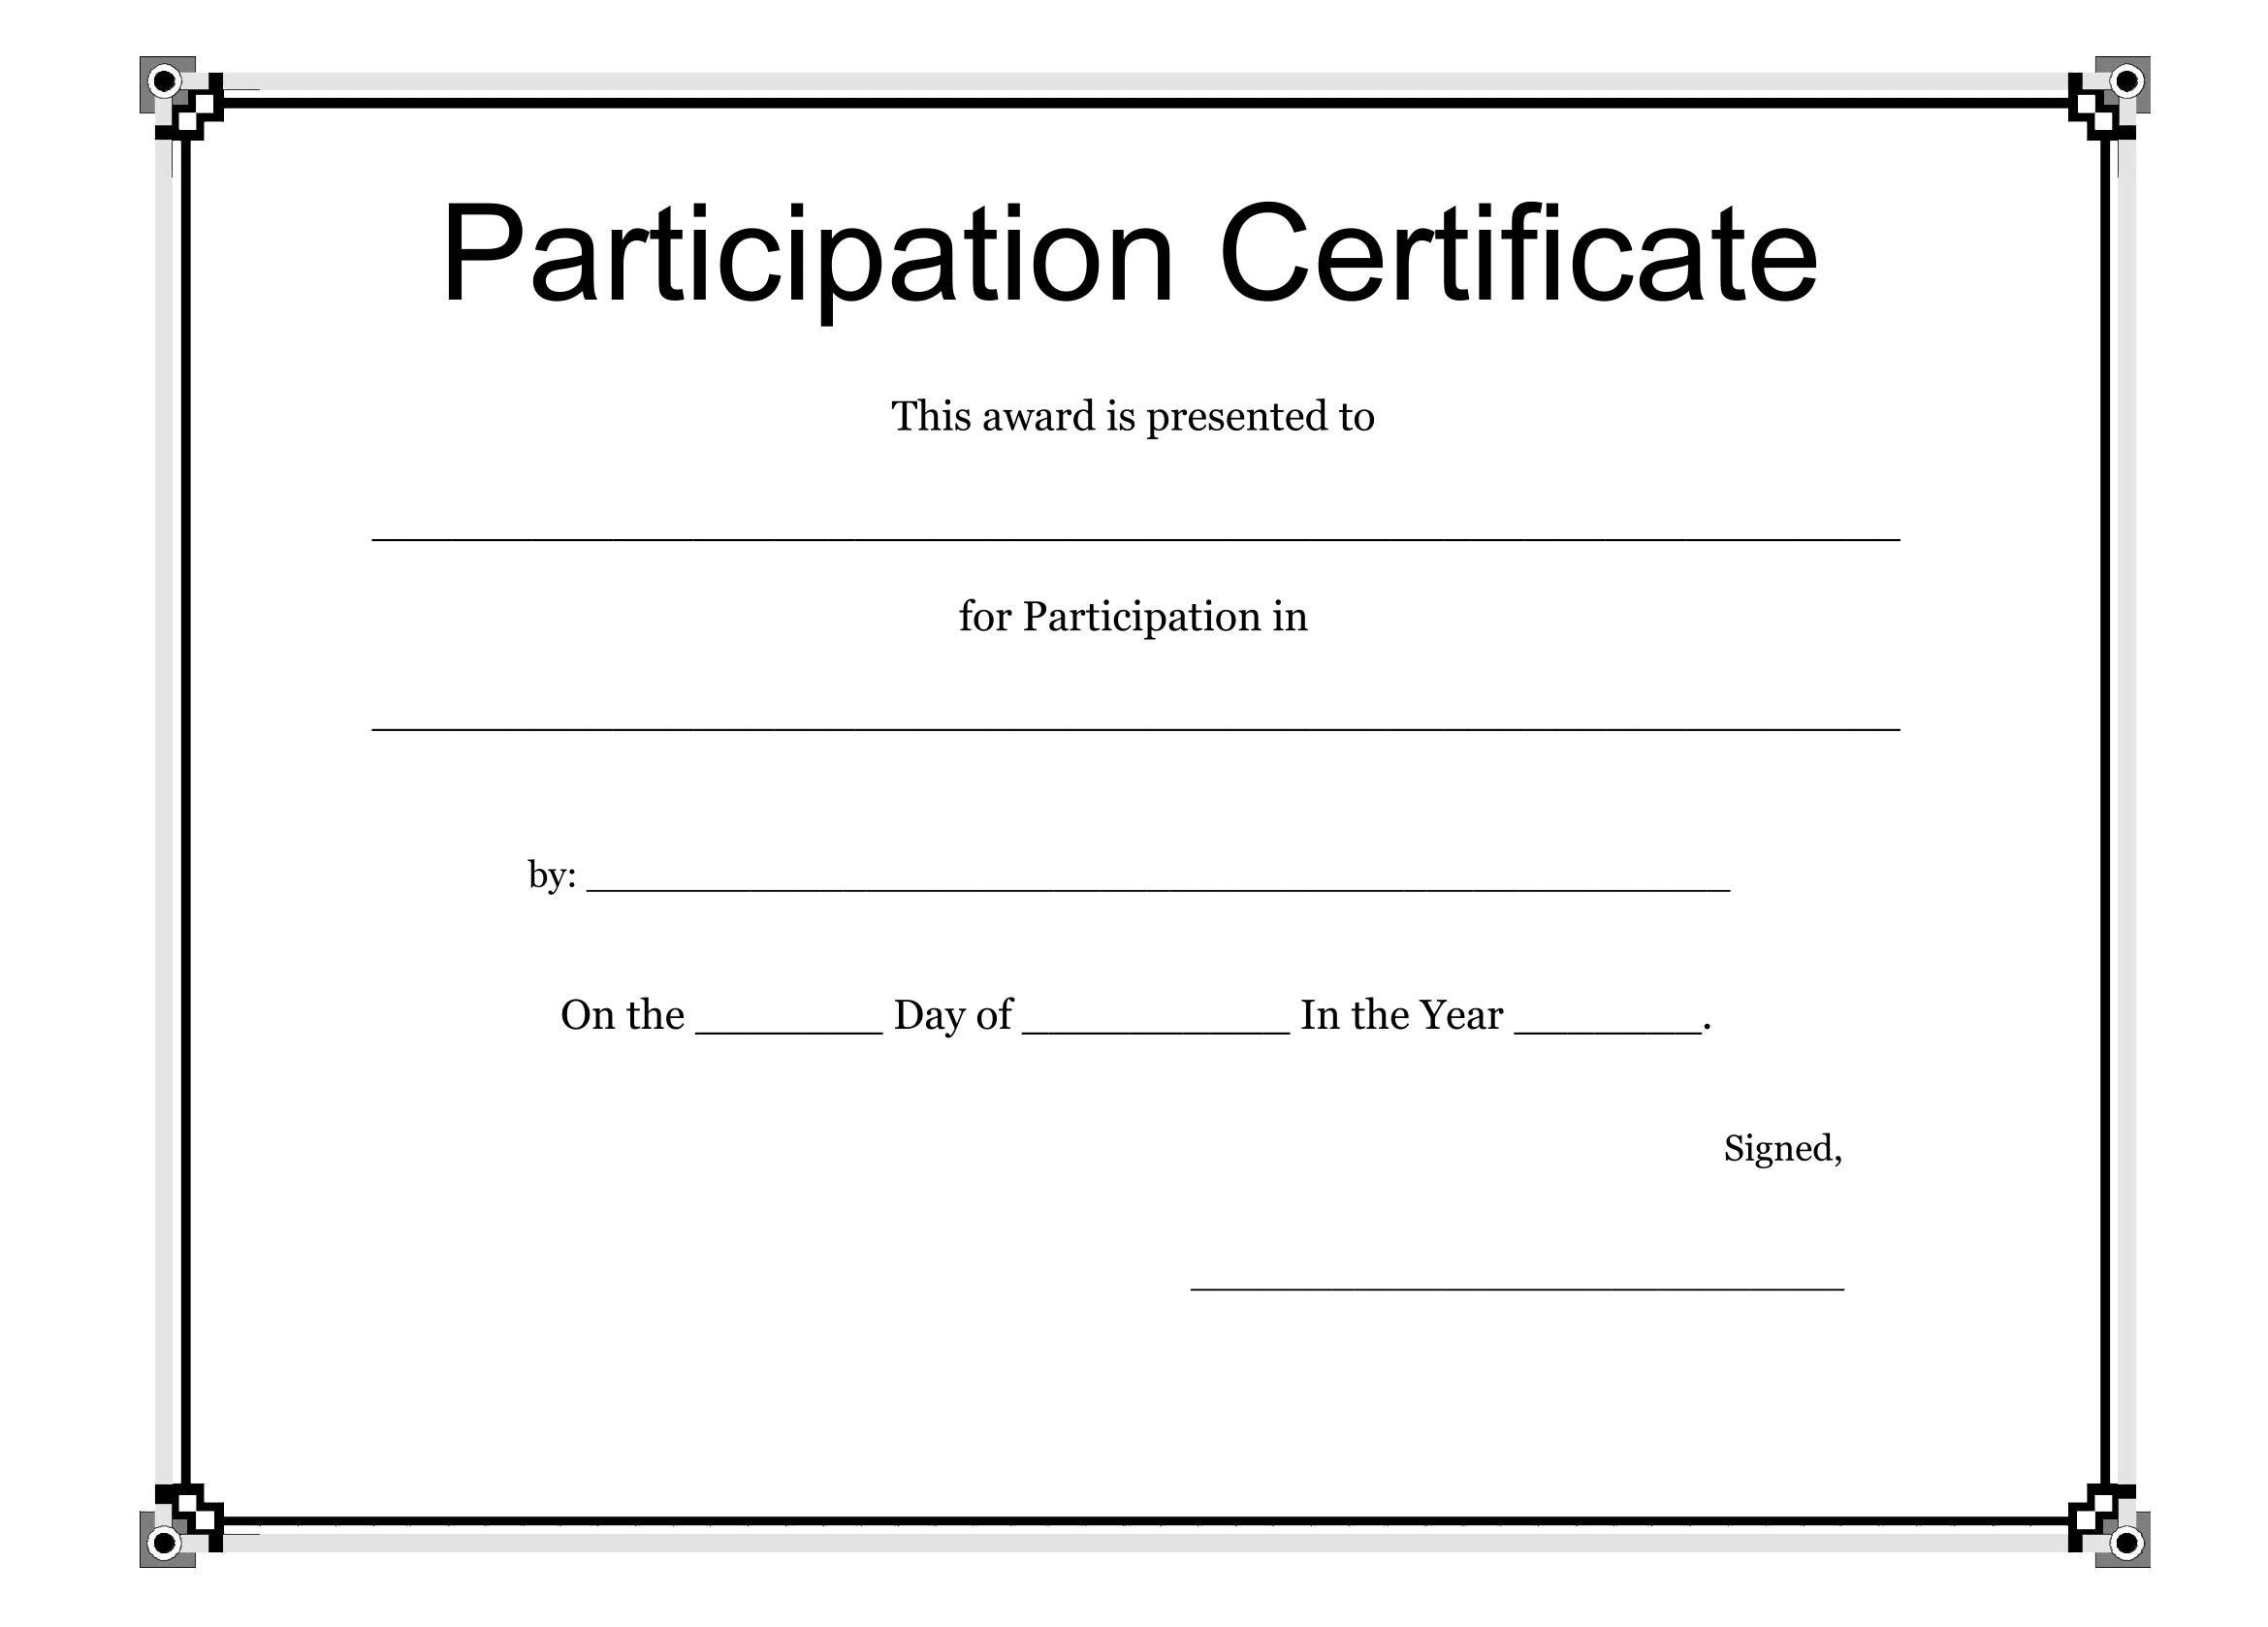 Participation certificate template free download for Free printable certificate templates